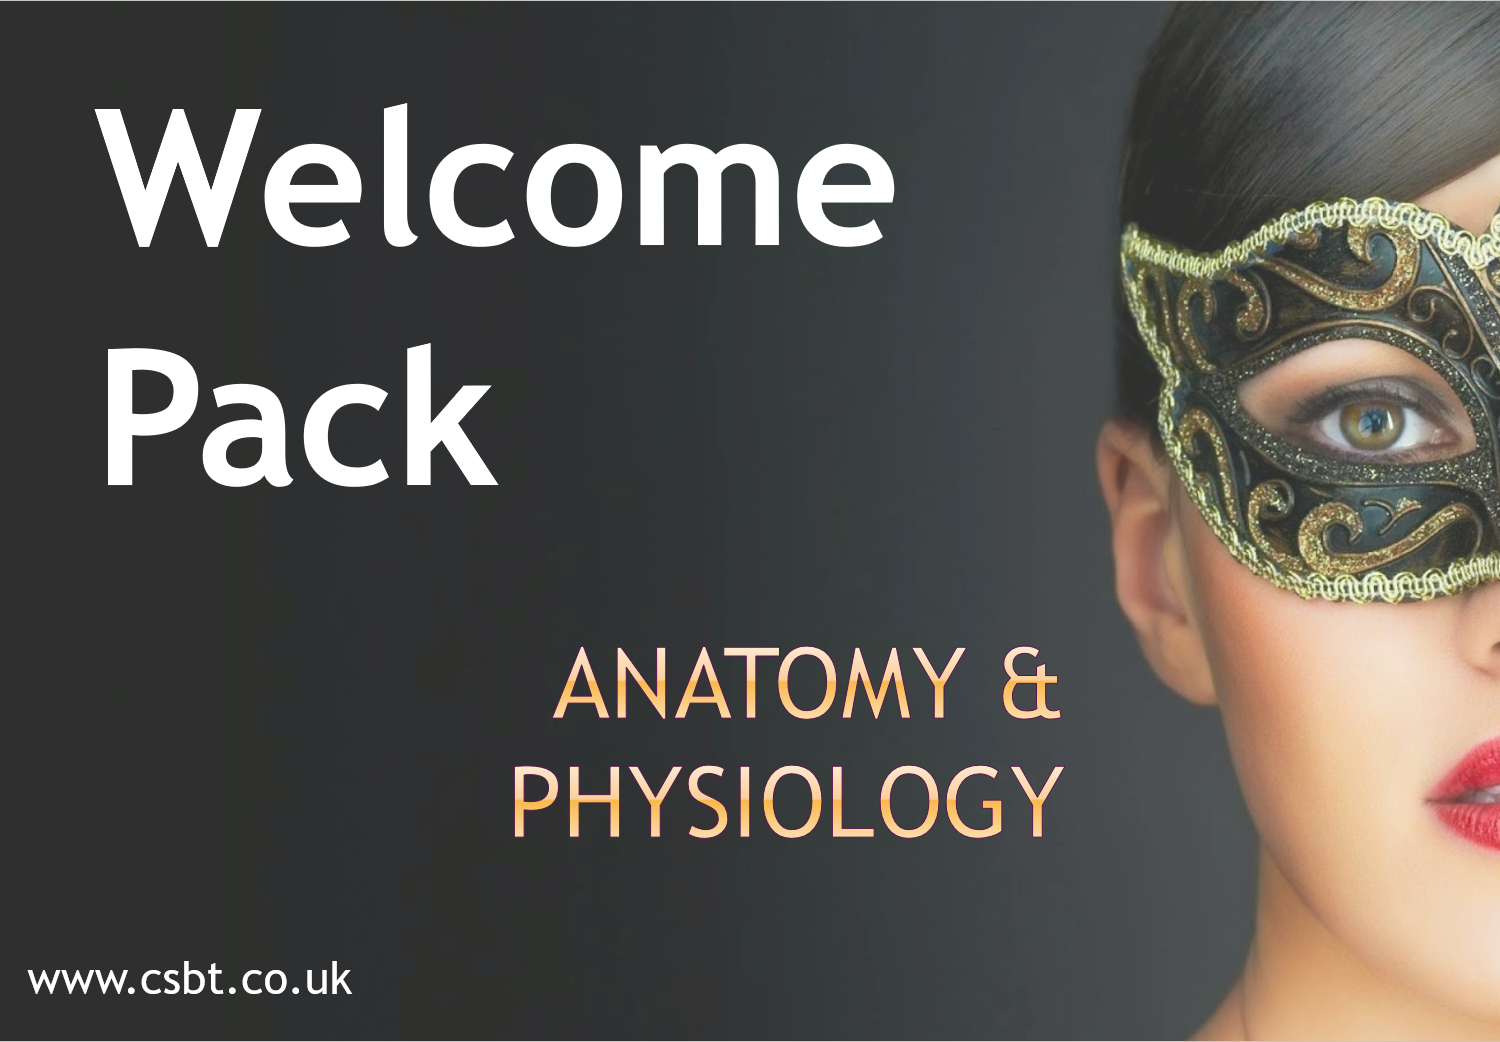 Anatomy and Physiology - Online diploma - Cambridge School of Beauty